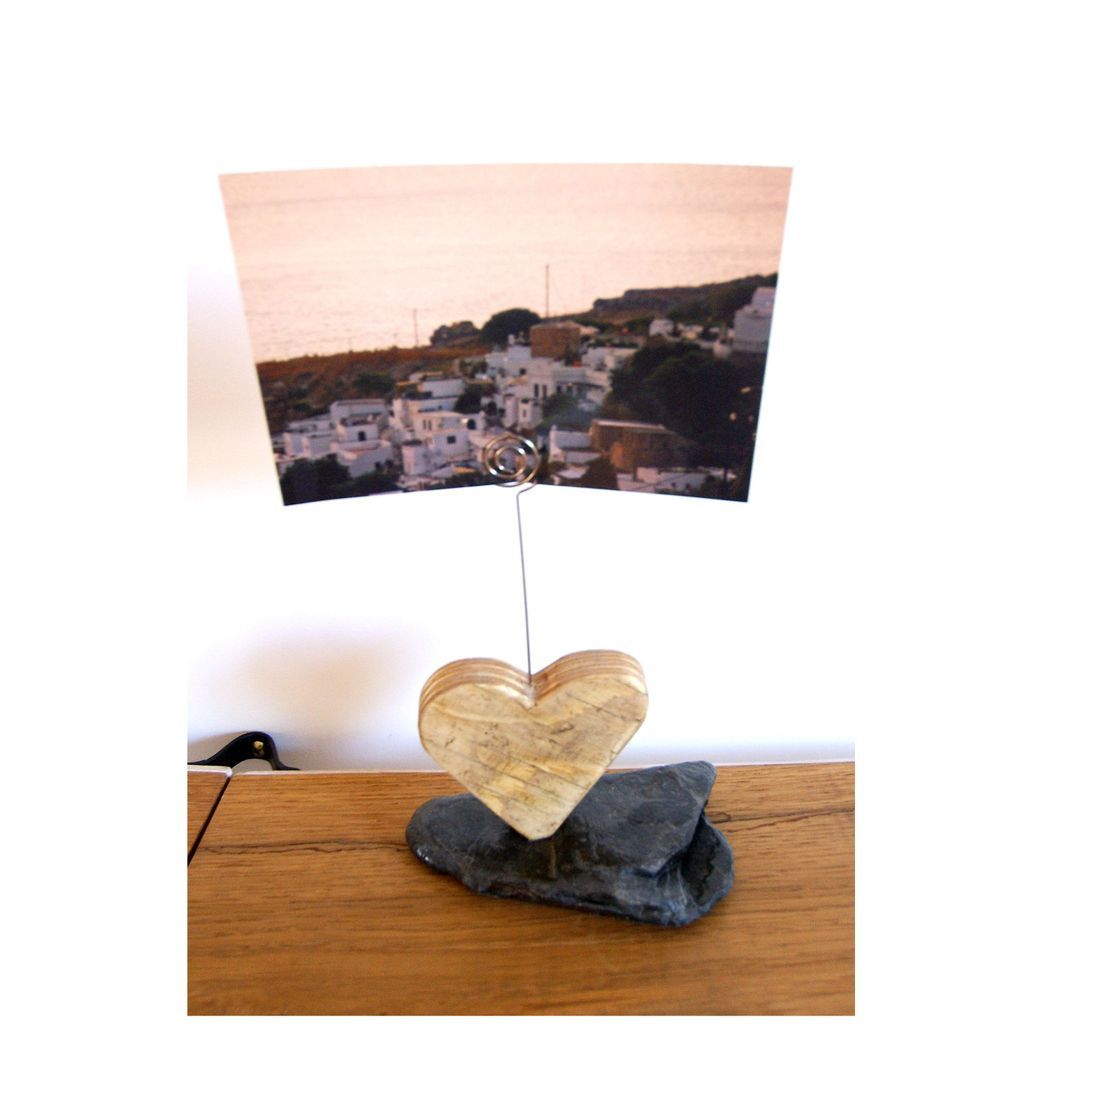 Driftwood picture / photo frame 6